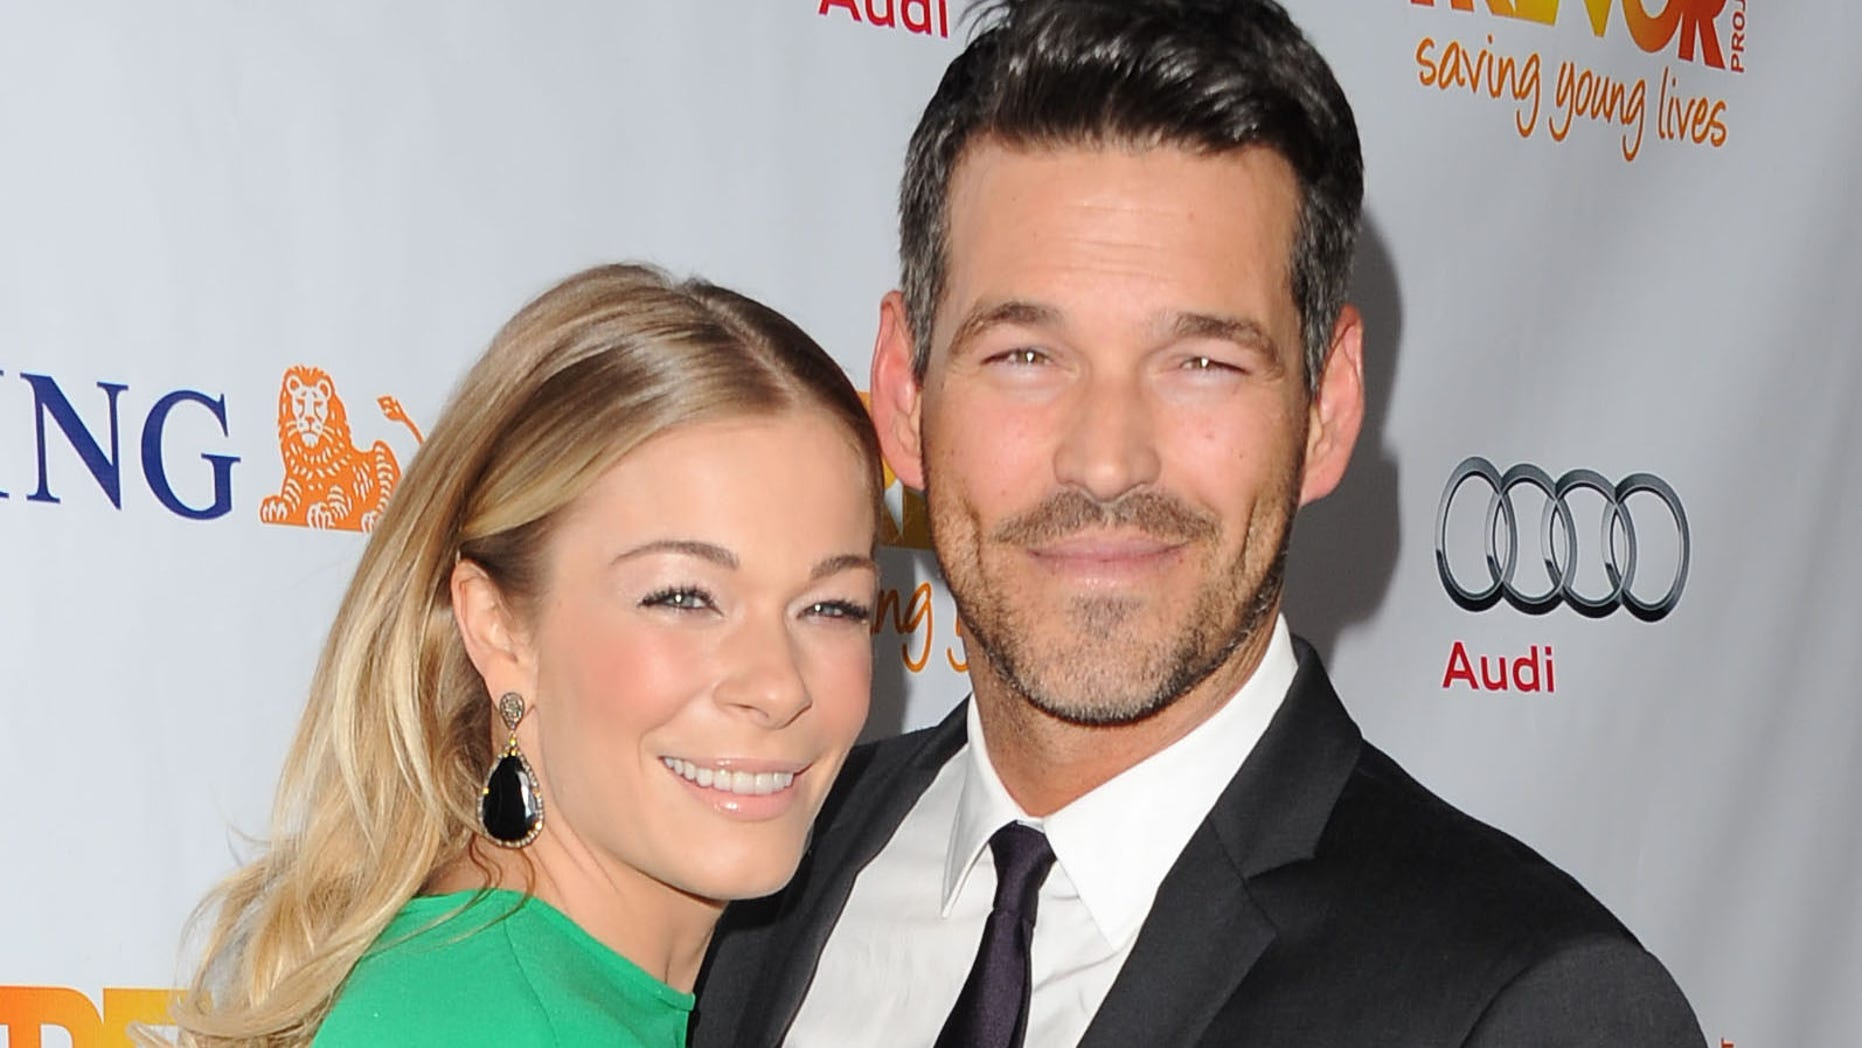 LOS ANGELES, CA - DECEMBER 04:  Actor Eddie Cibrian and singer LeAnn Rimes arrive at the Trevor Project's 2011 Trevor Live! at The Hollywood Palladium on December 4, 2011 in Los Angeles, California.  (Photo by Jason Merritt/Getty Images)